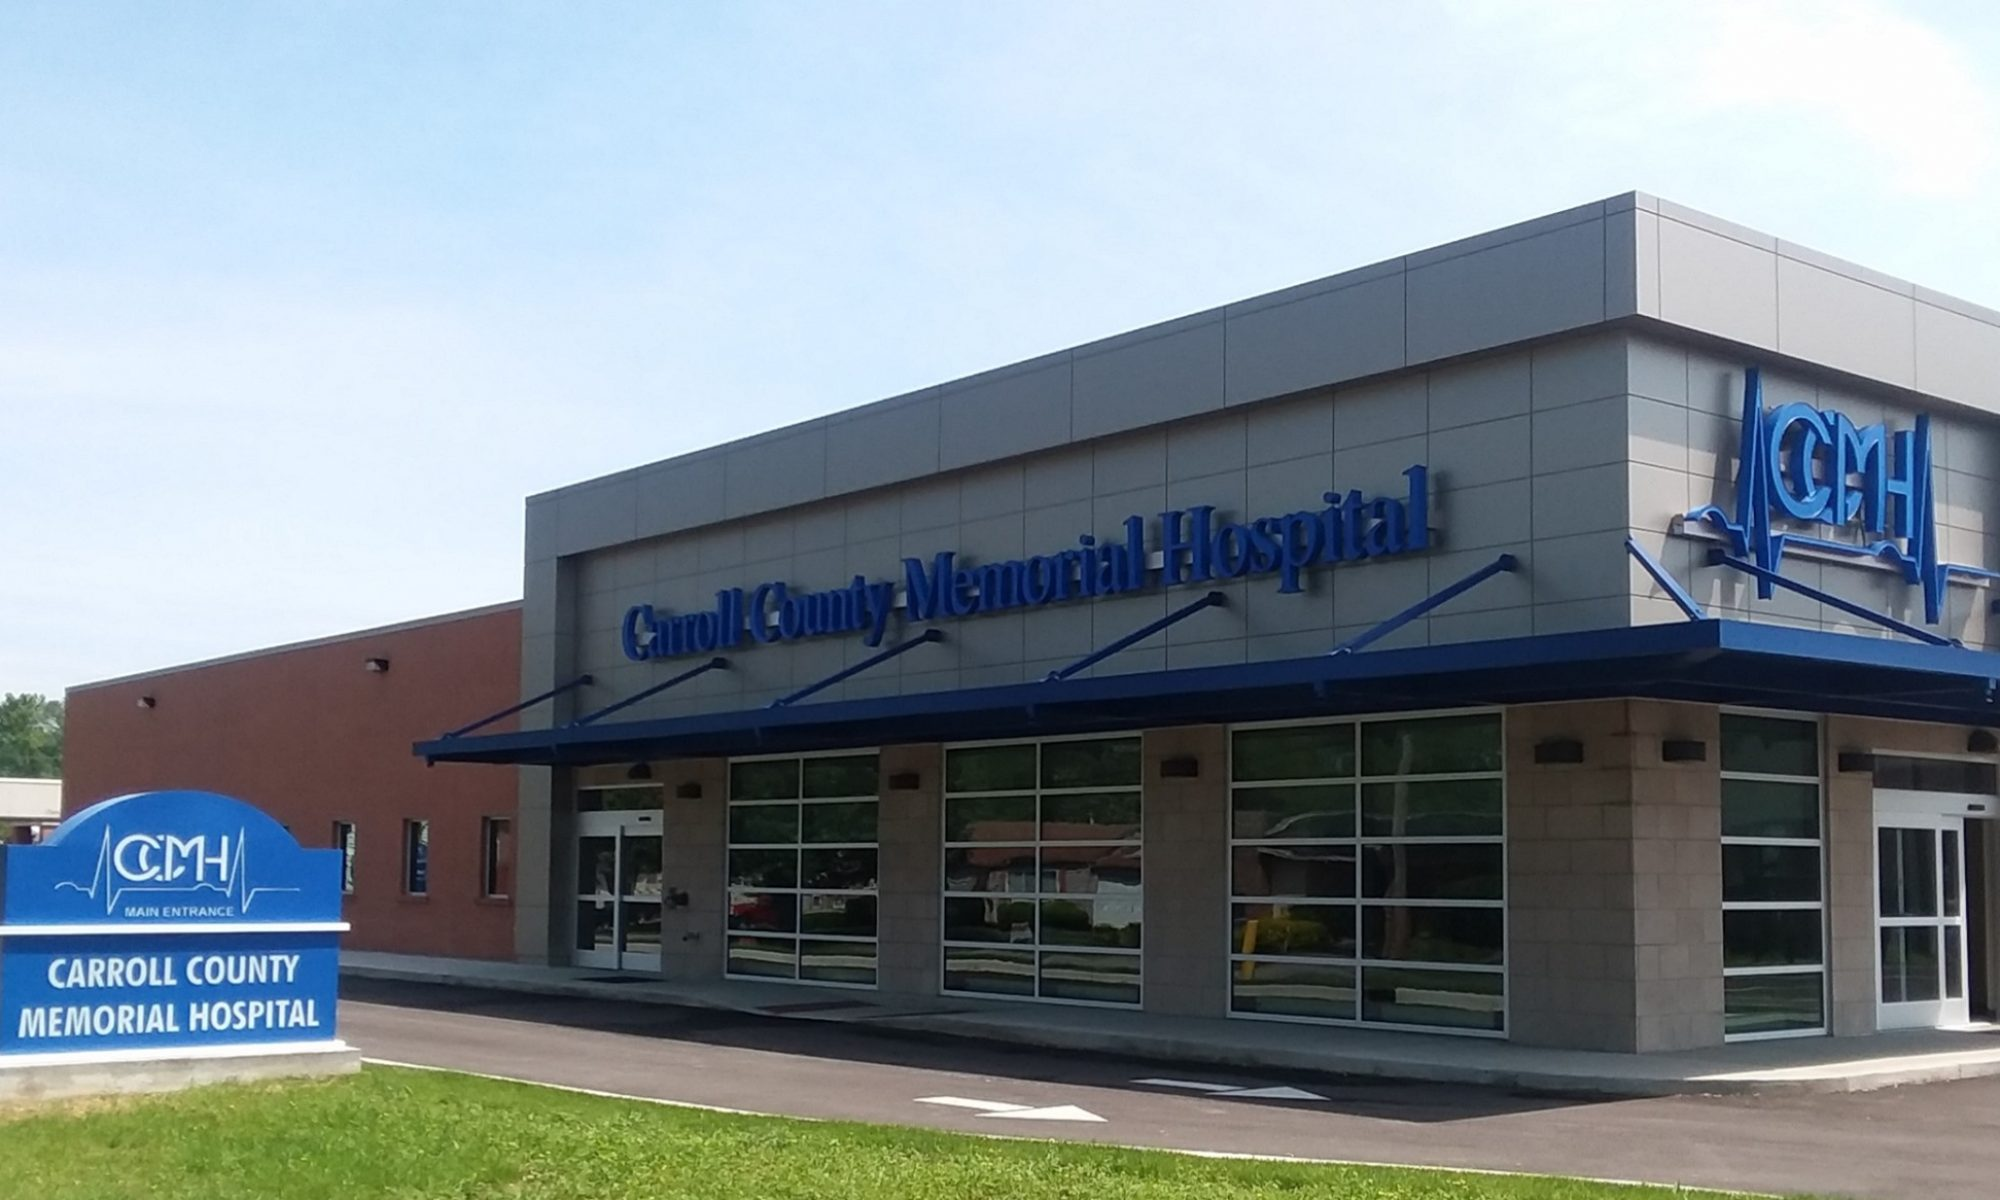 Carroll County Memorial Hospital